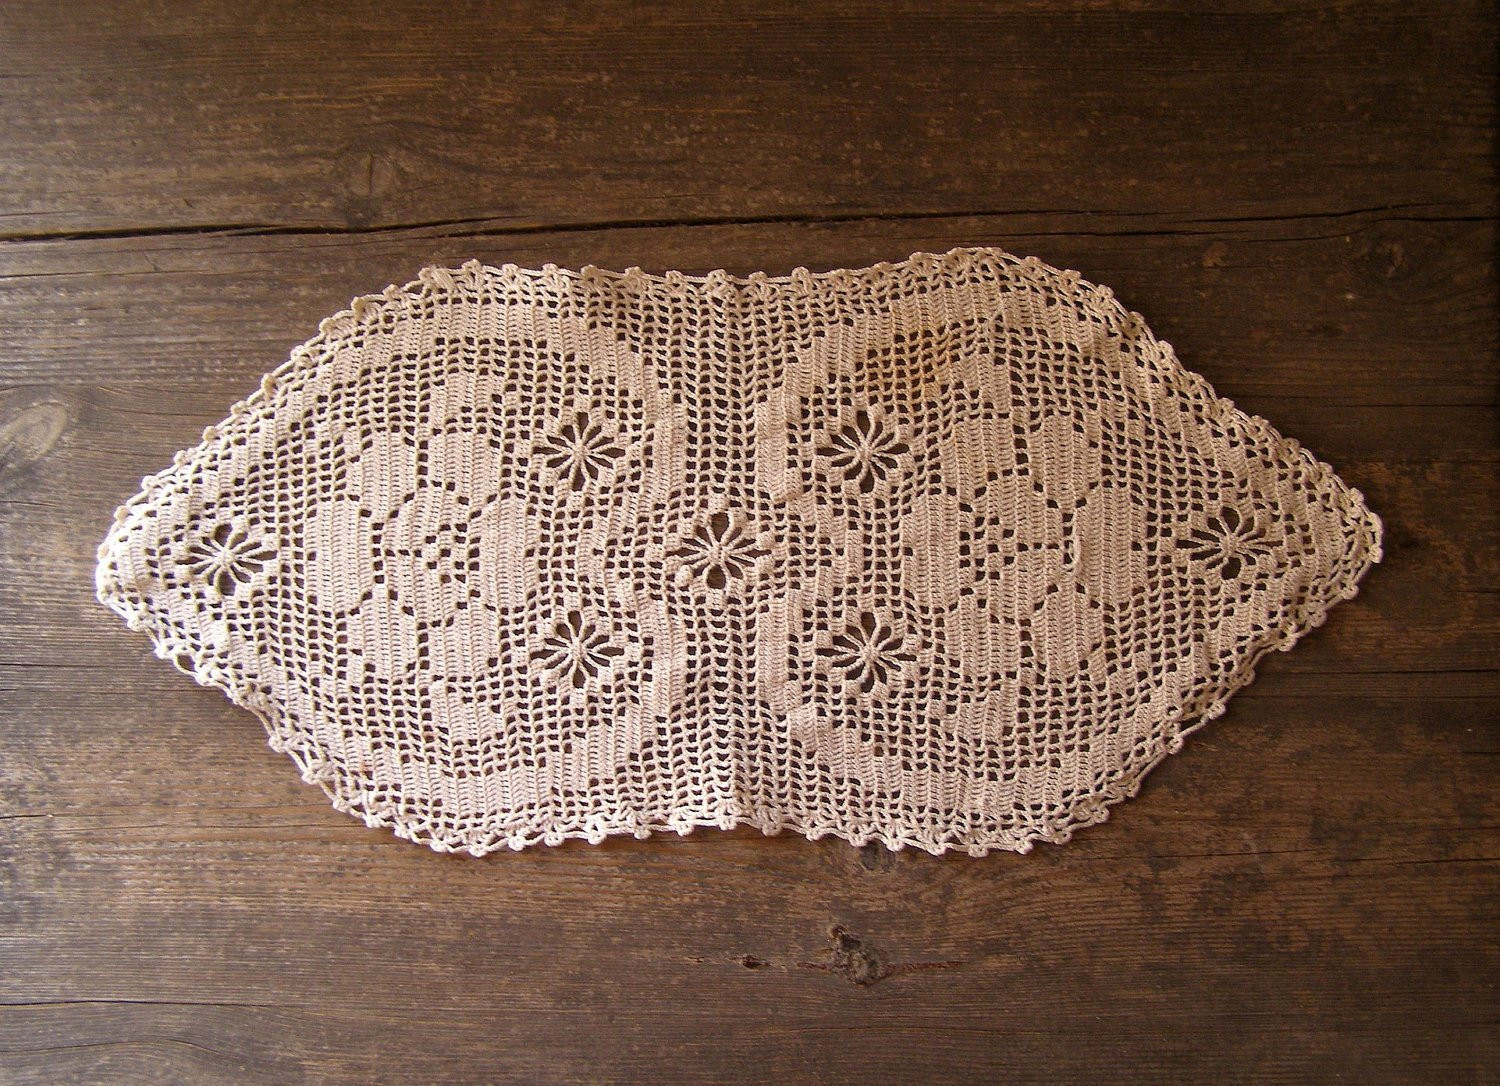 Crochet Tablecloth Best Of Crochet Table Runner Hearts Oval Tablecloth Listed by Of Perfect 43 Images Crochet Tablecloth